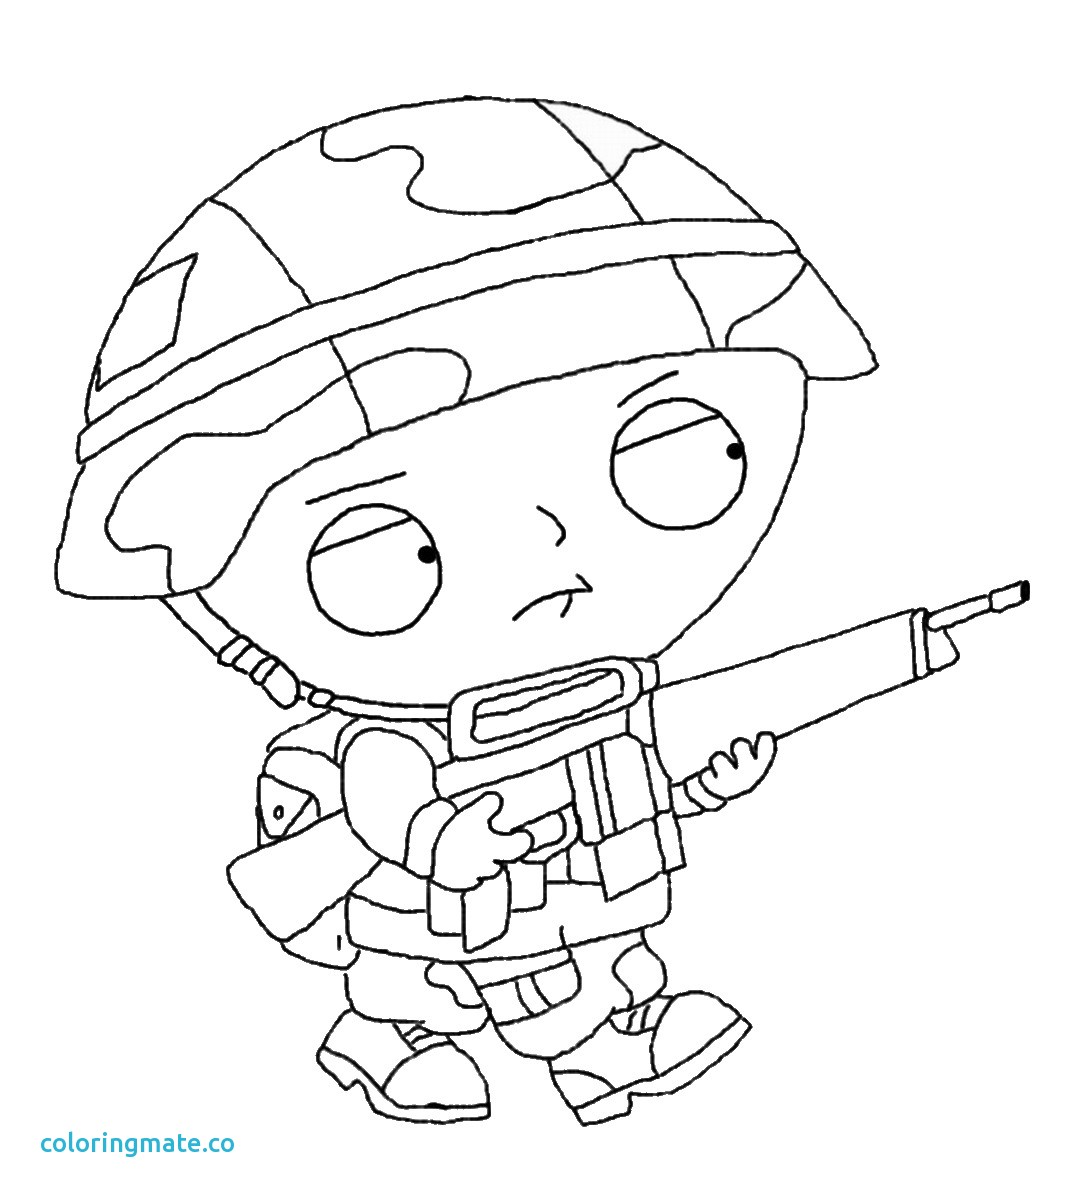 1075x1200 Family Guy Coloring Pages Beautiful Stewie Griffin Cute Avondale